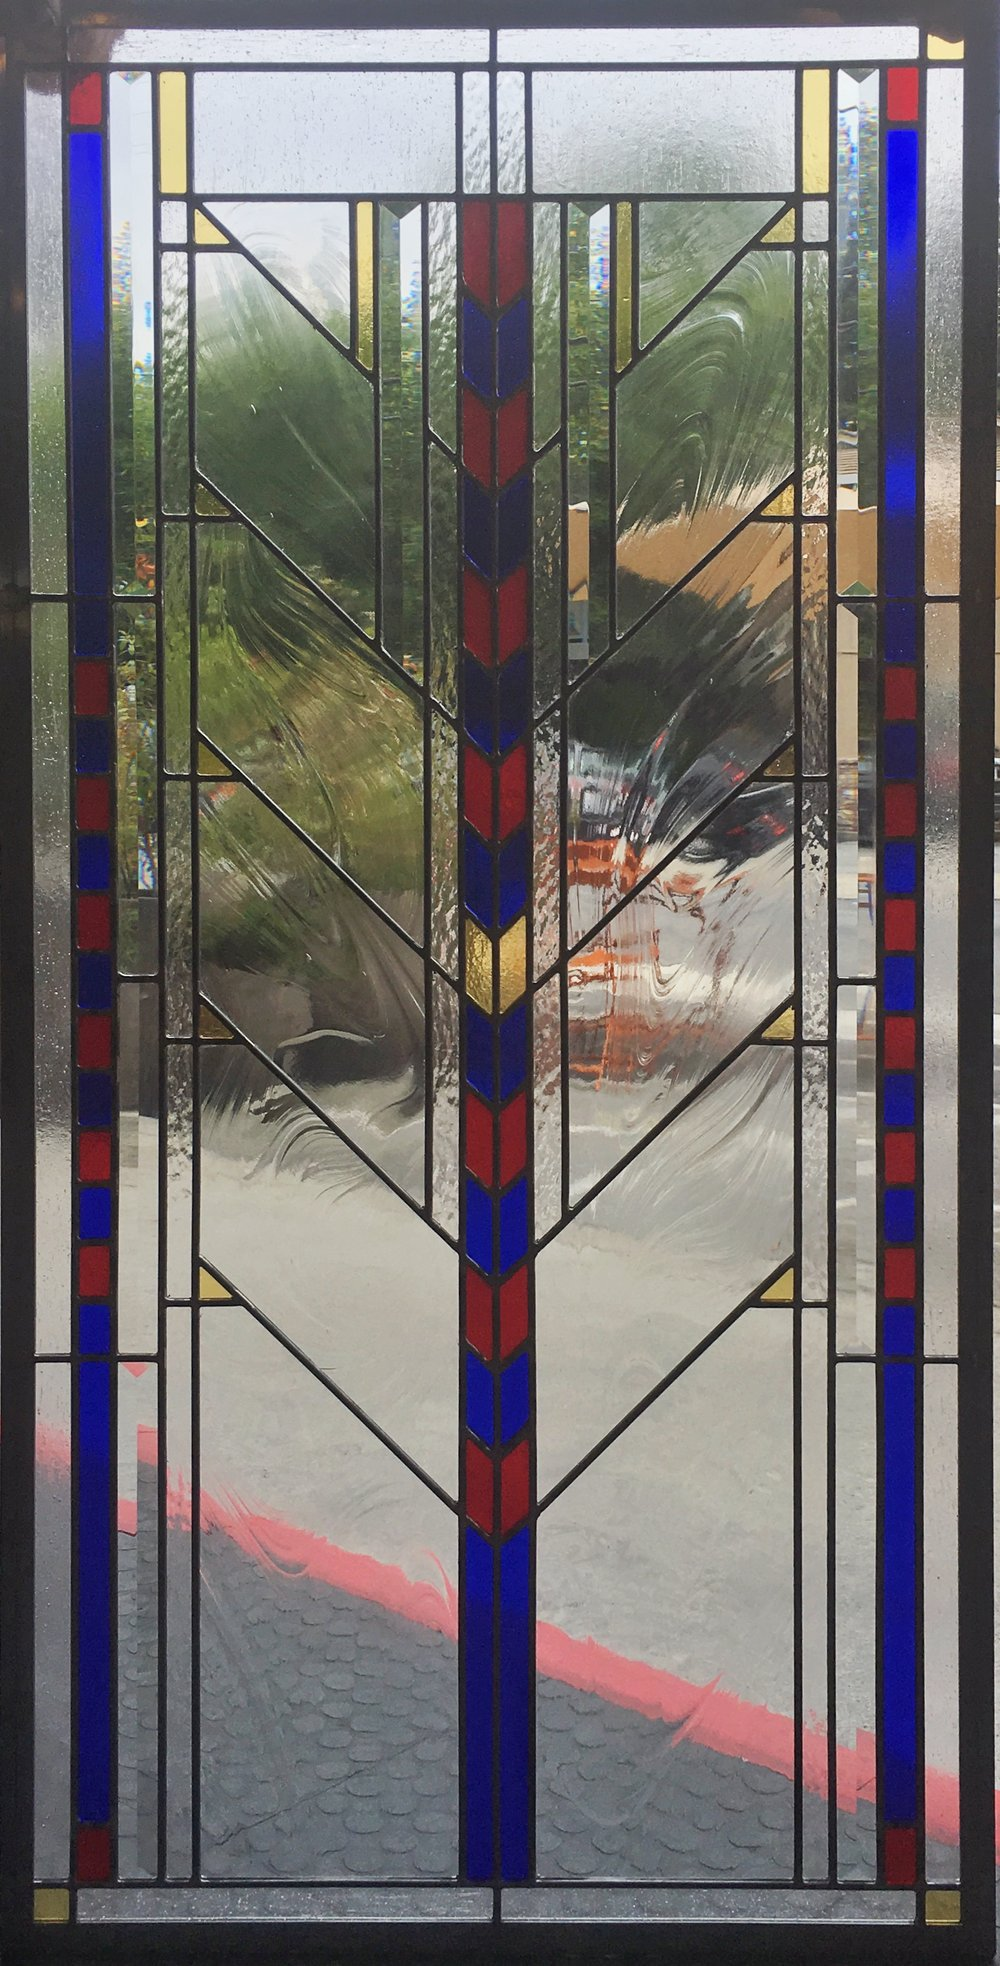 modern geometric frank lloyd wright angled art deco baroque beveled leaded glass stained glass window studio palo alto atherton california san francisco san jose legacy glass.JPG